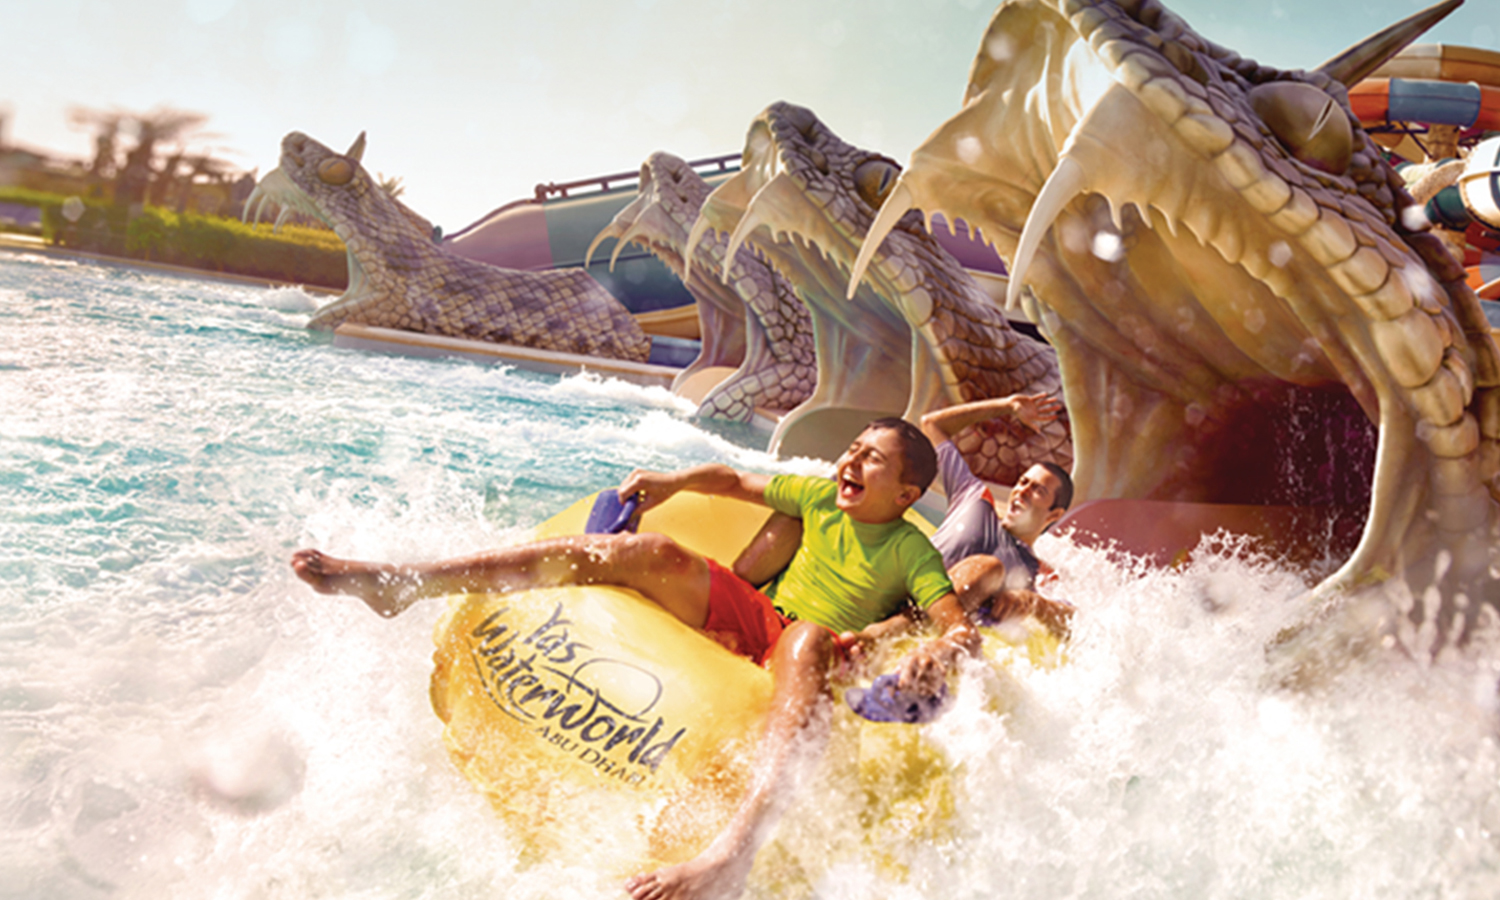 yas waterworld kids on snake waterslide